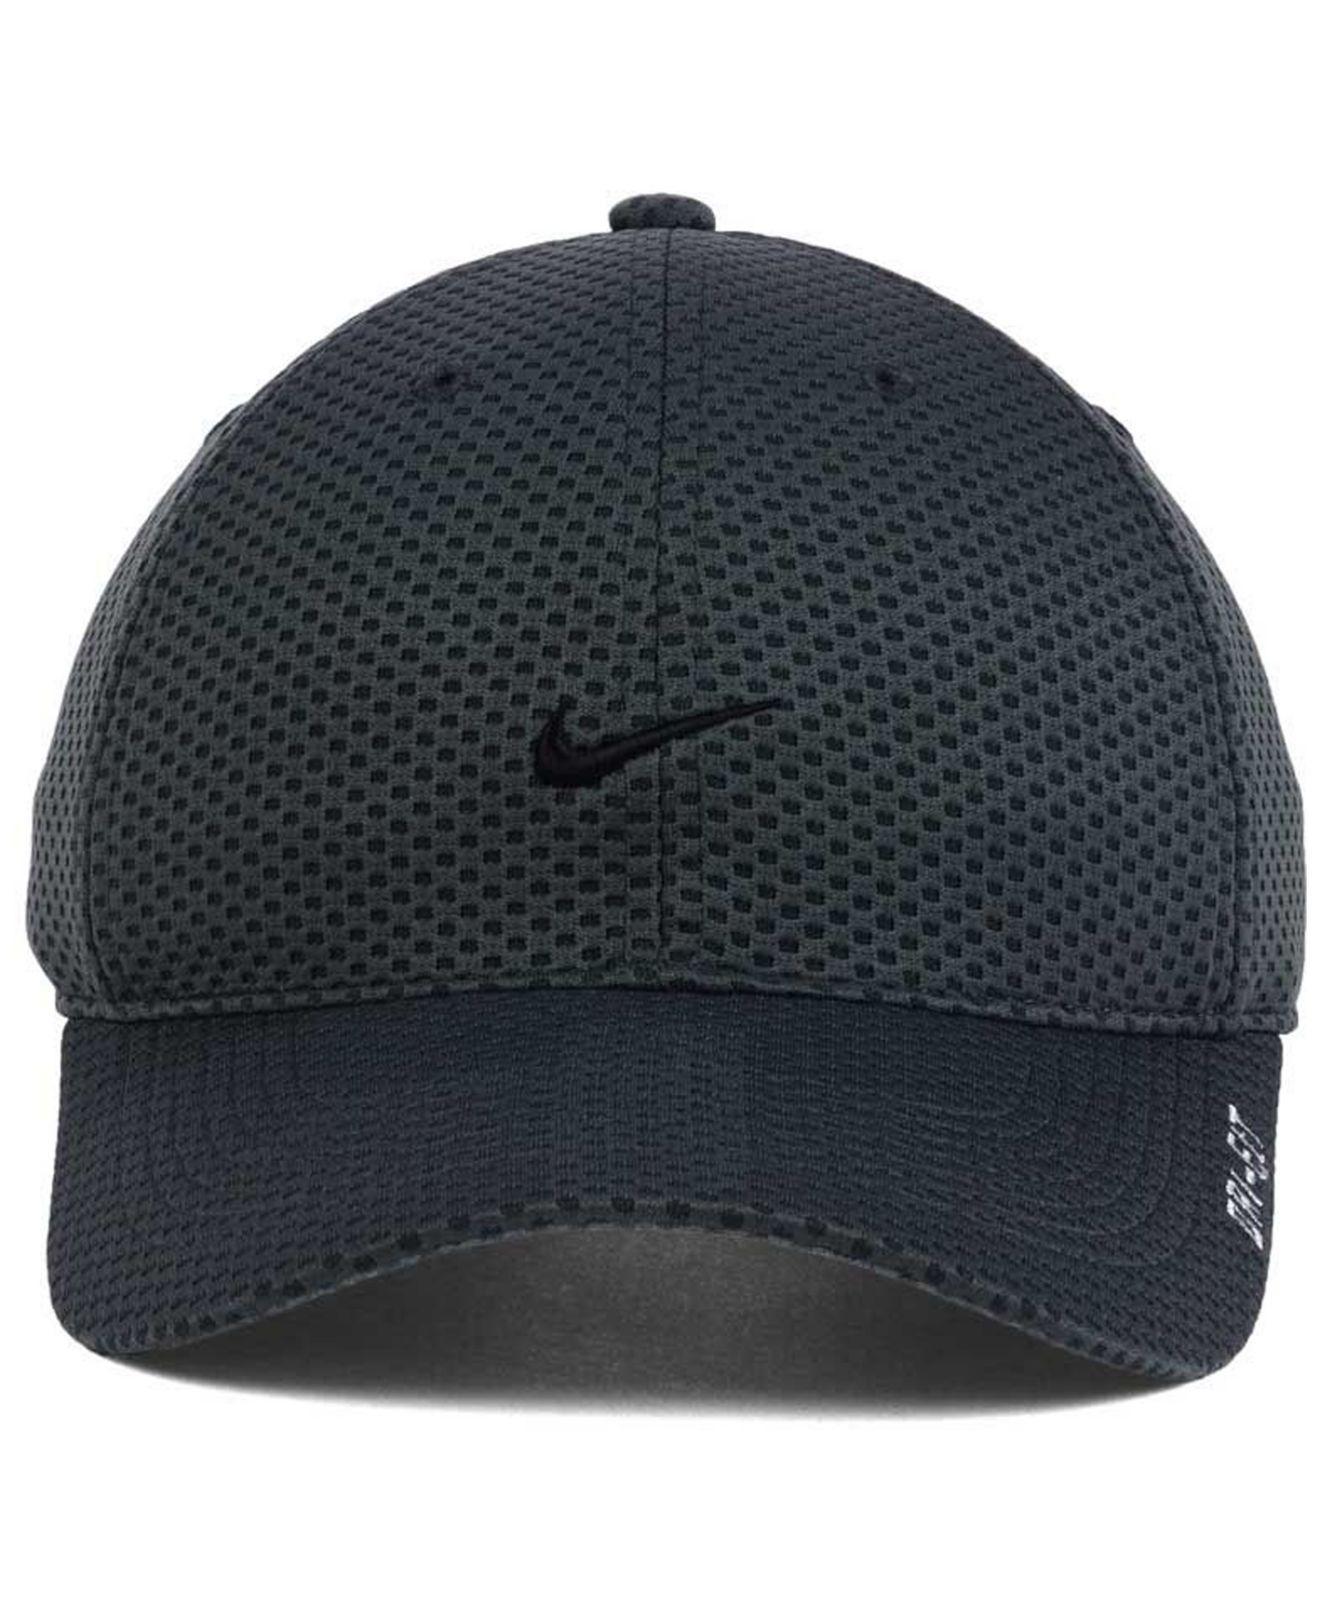 7e14c353867 ... buy lyst nike 6 panel tailwind cap in black for men 3f1d5 3c43b